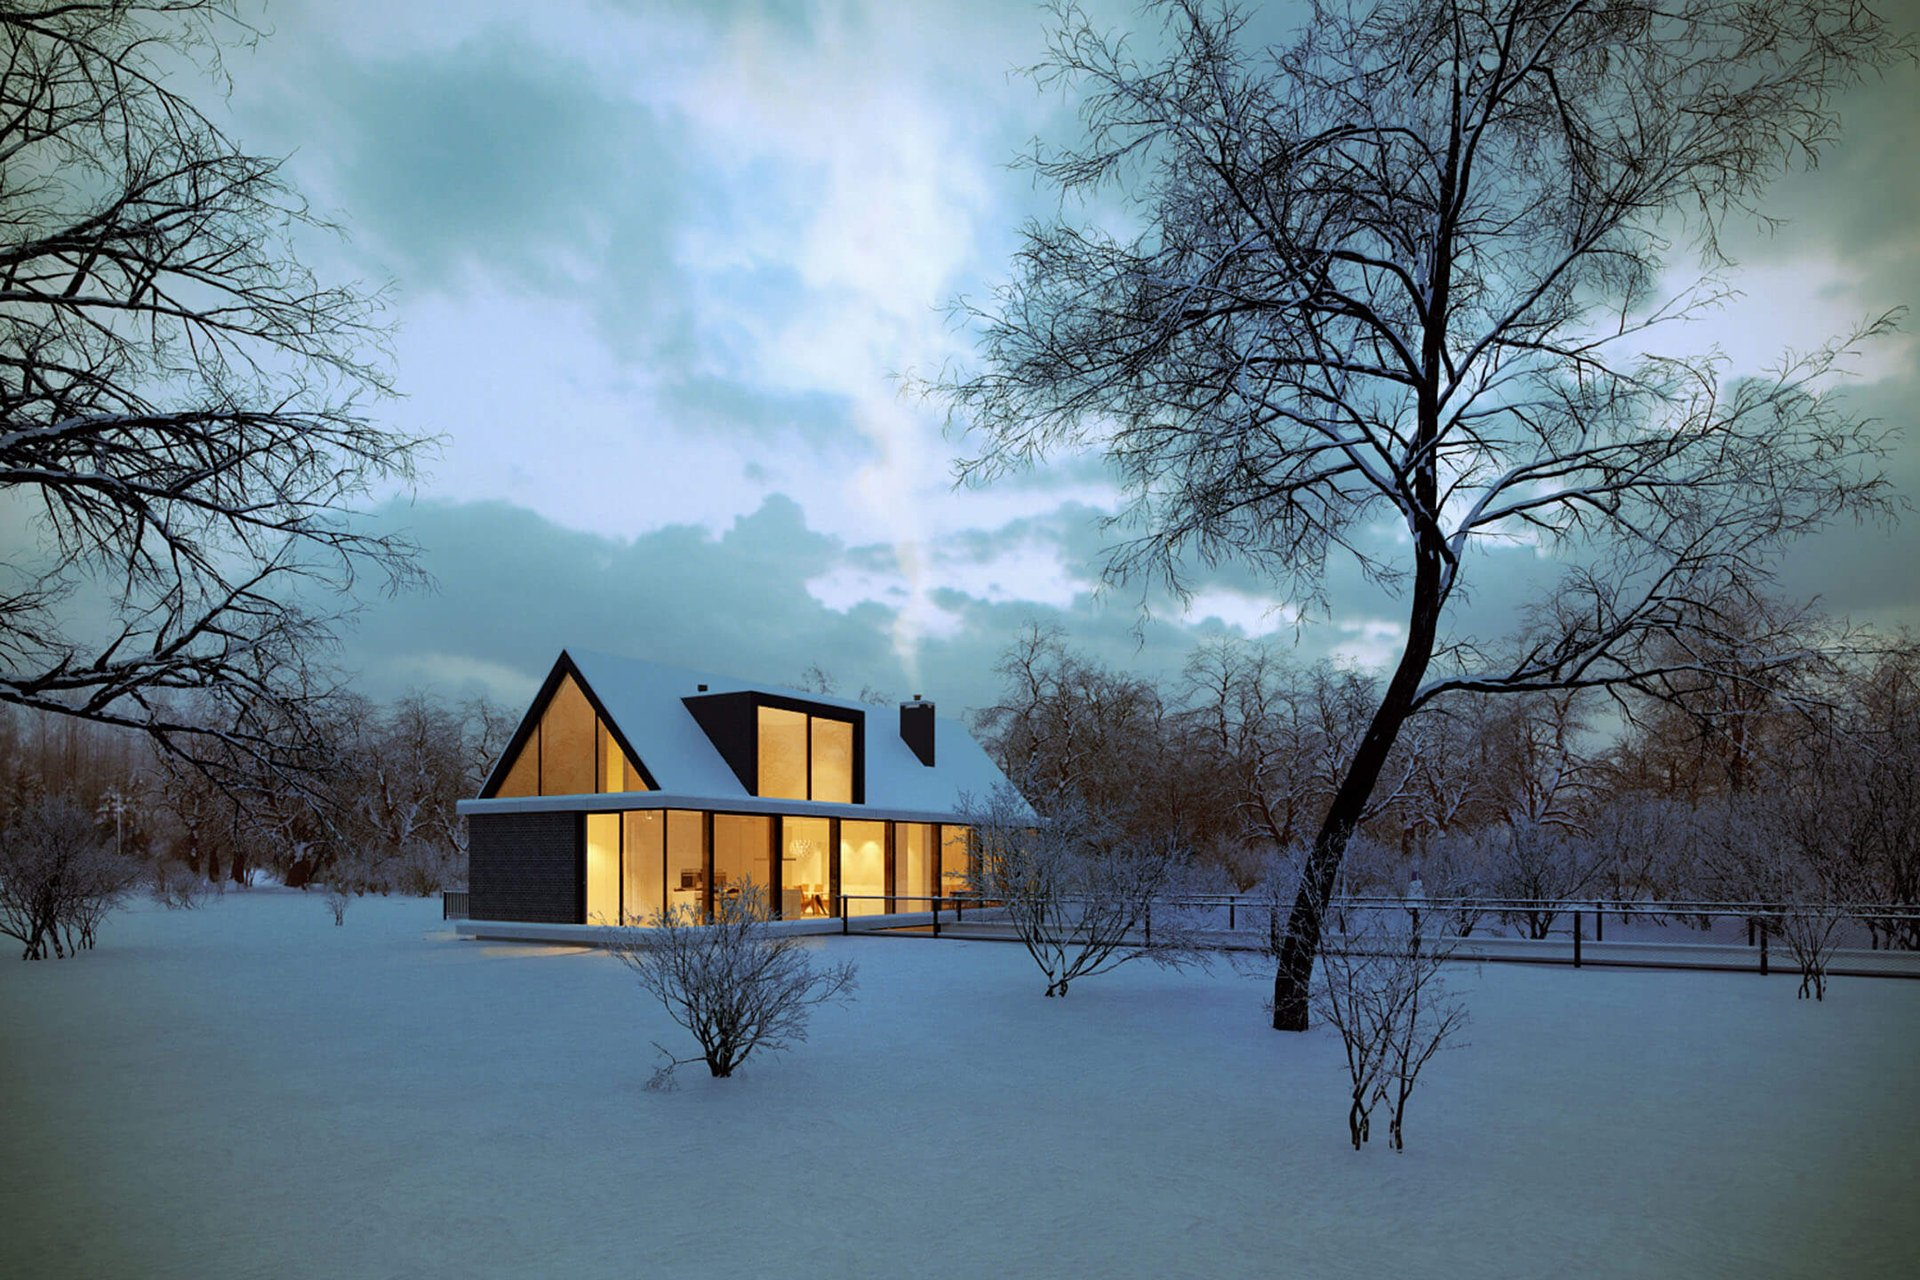 3D Exterior Visualization of a Rural House in Winter